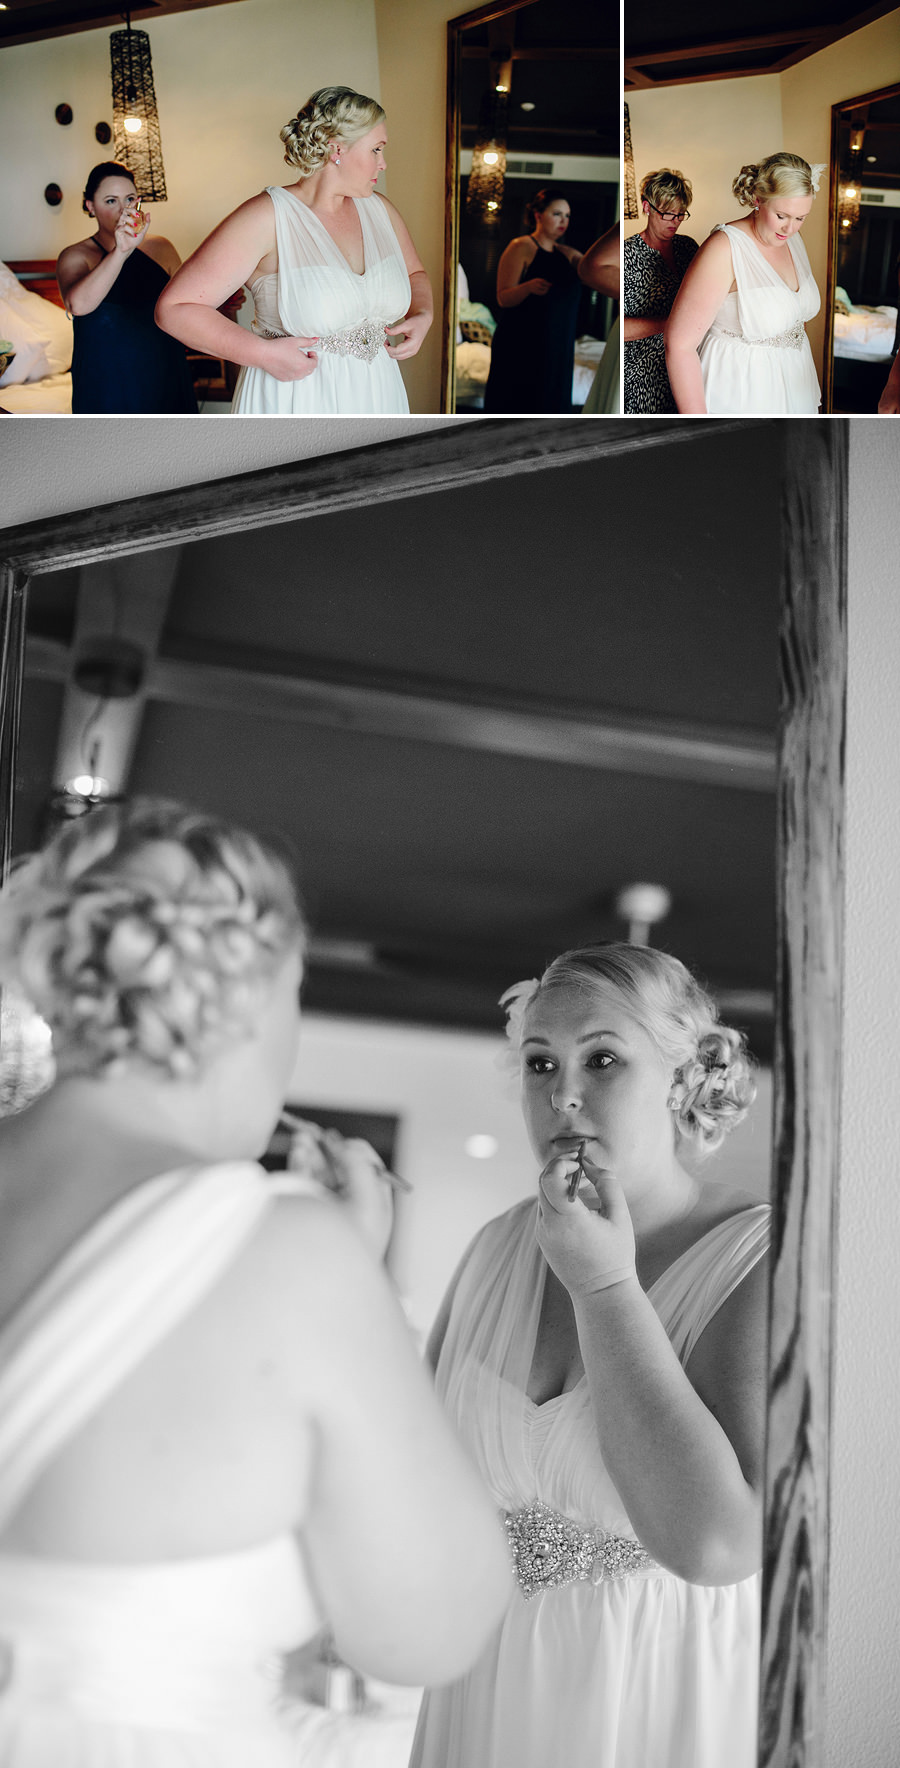 Fijian Wedding Photographer: Makeup